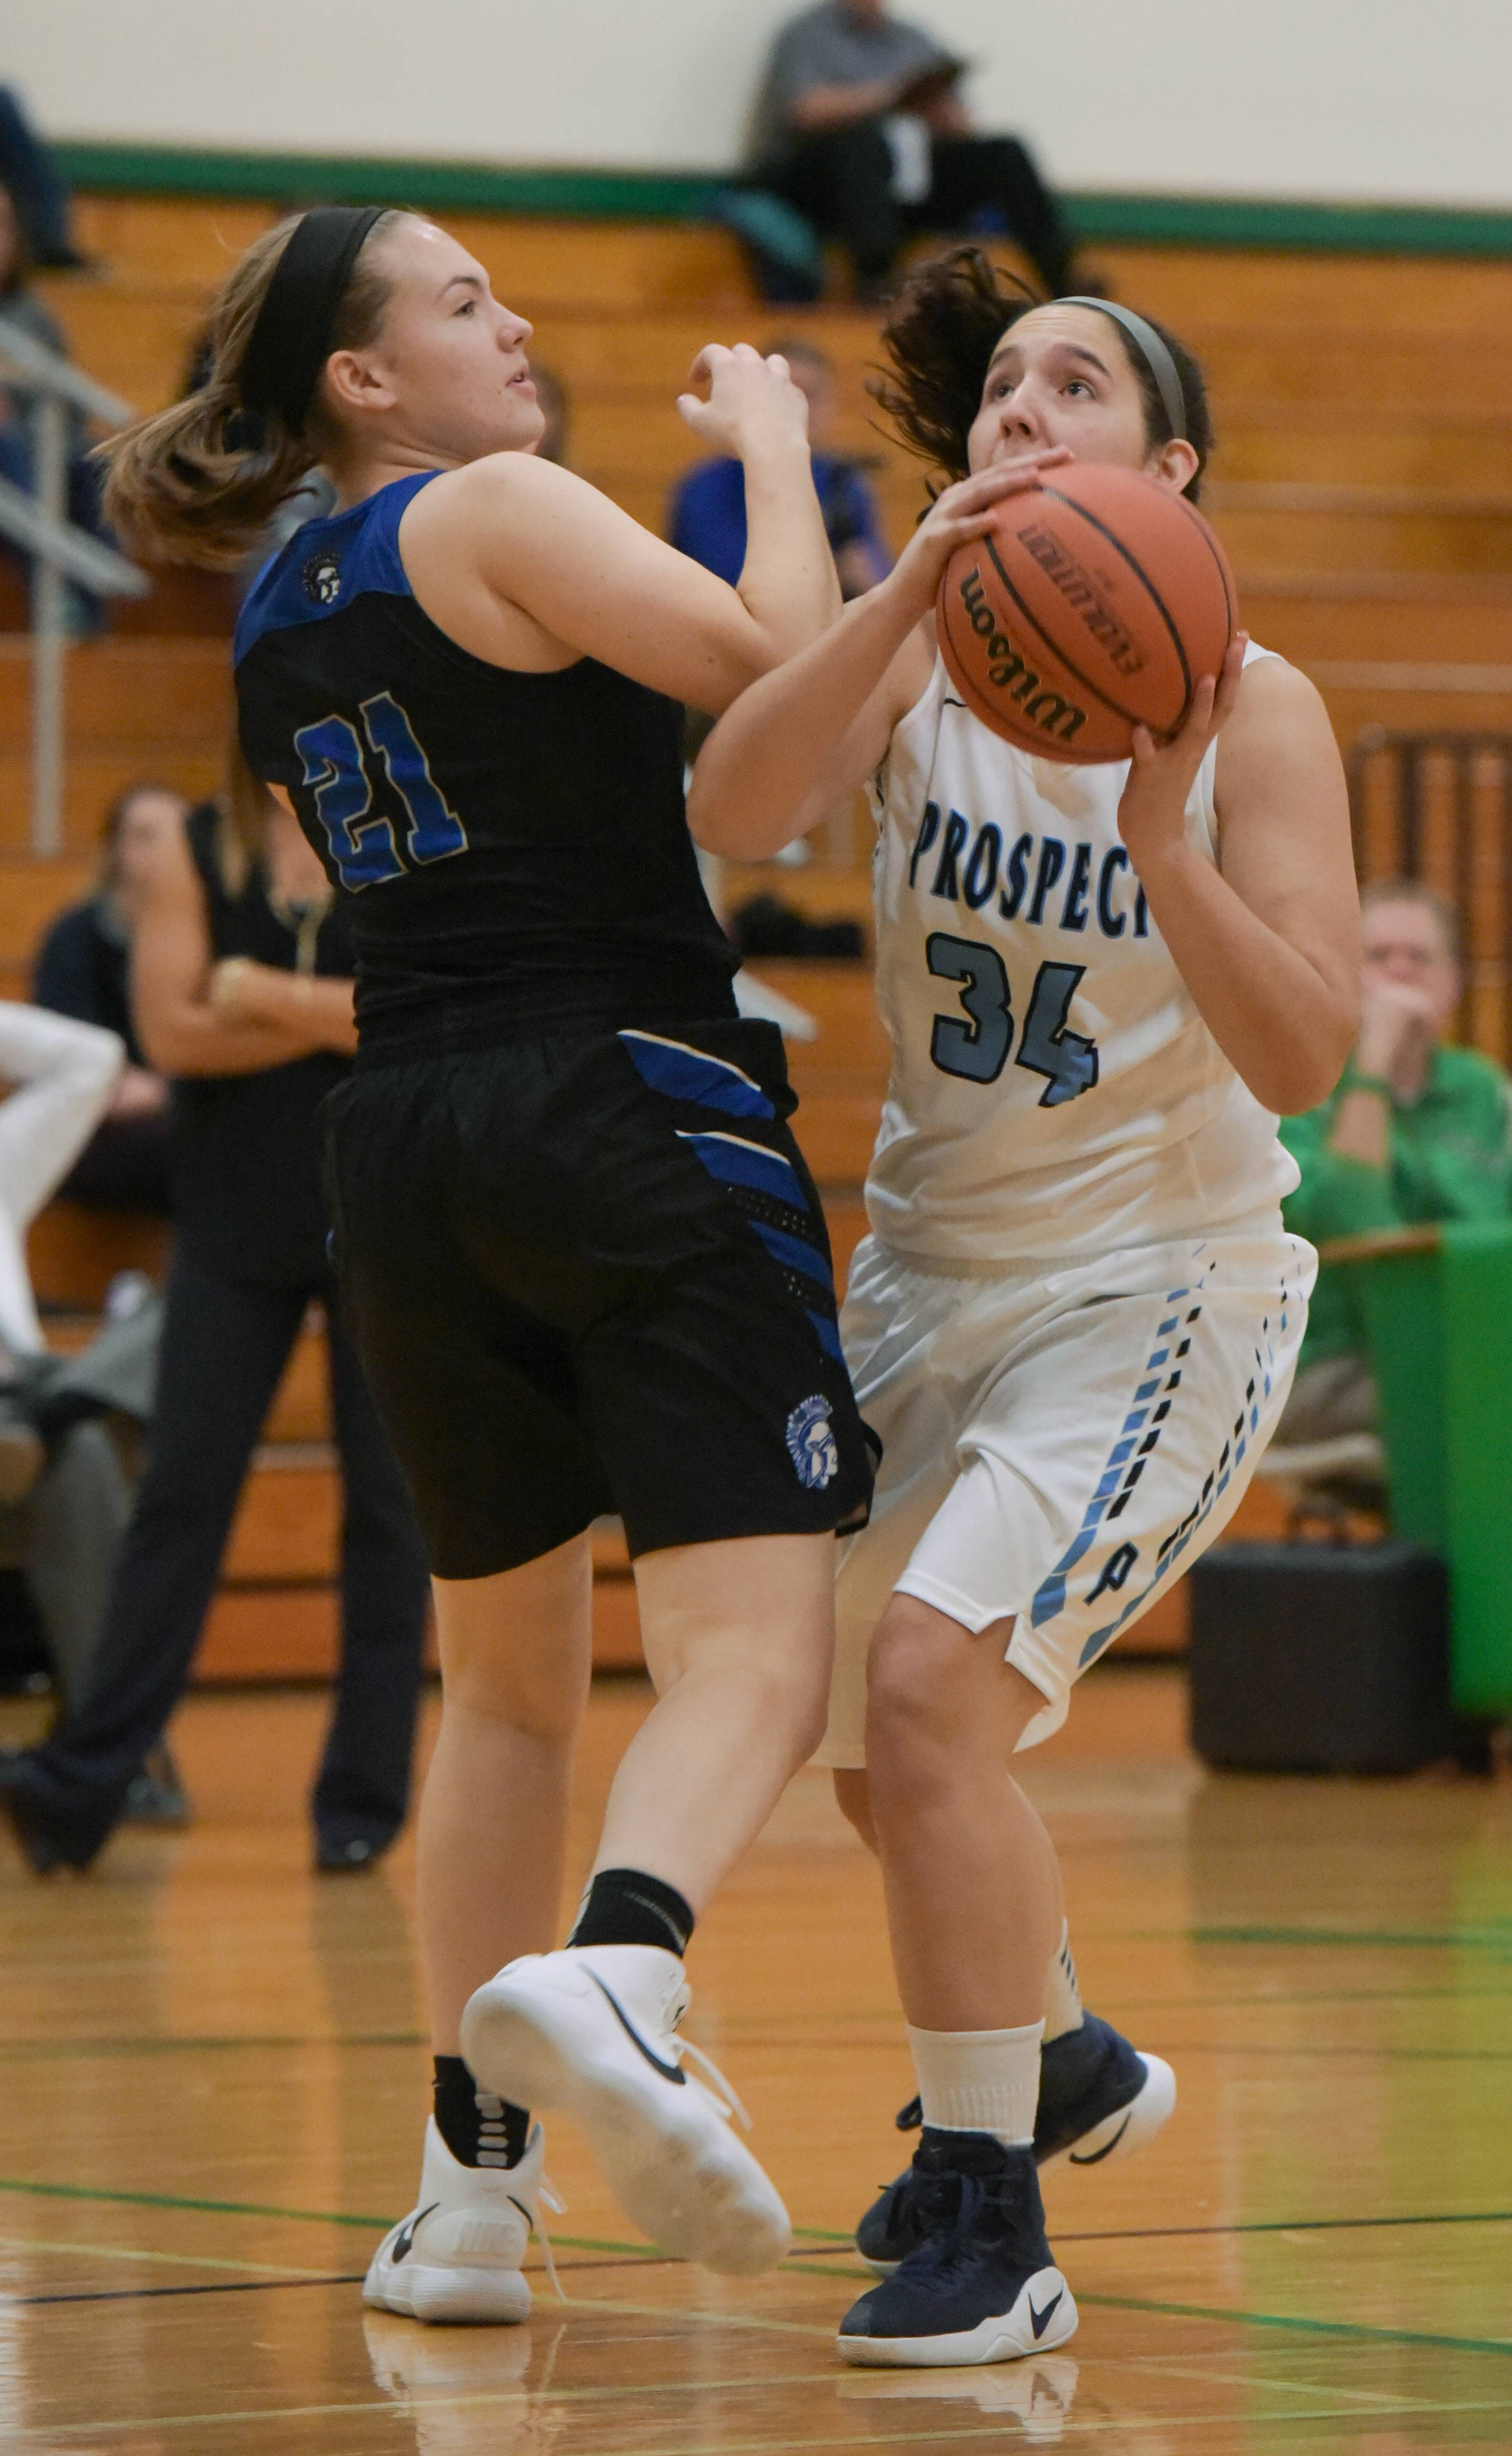 Prospect's Sara Biesterfeldt sets up for a shot over St. Francis' Meagan DeRaimo during the York Thanksgiving girls basketball tournament on November 13, 2017.